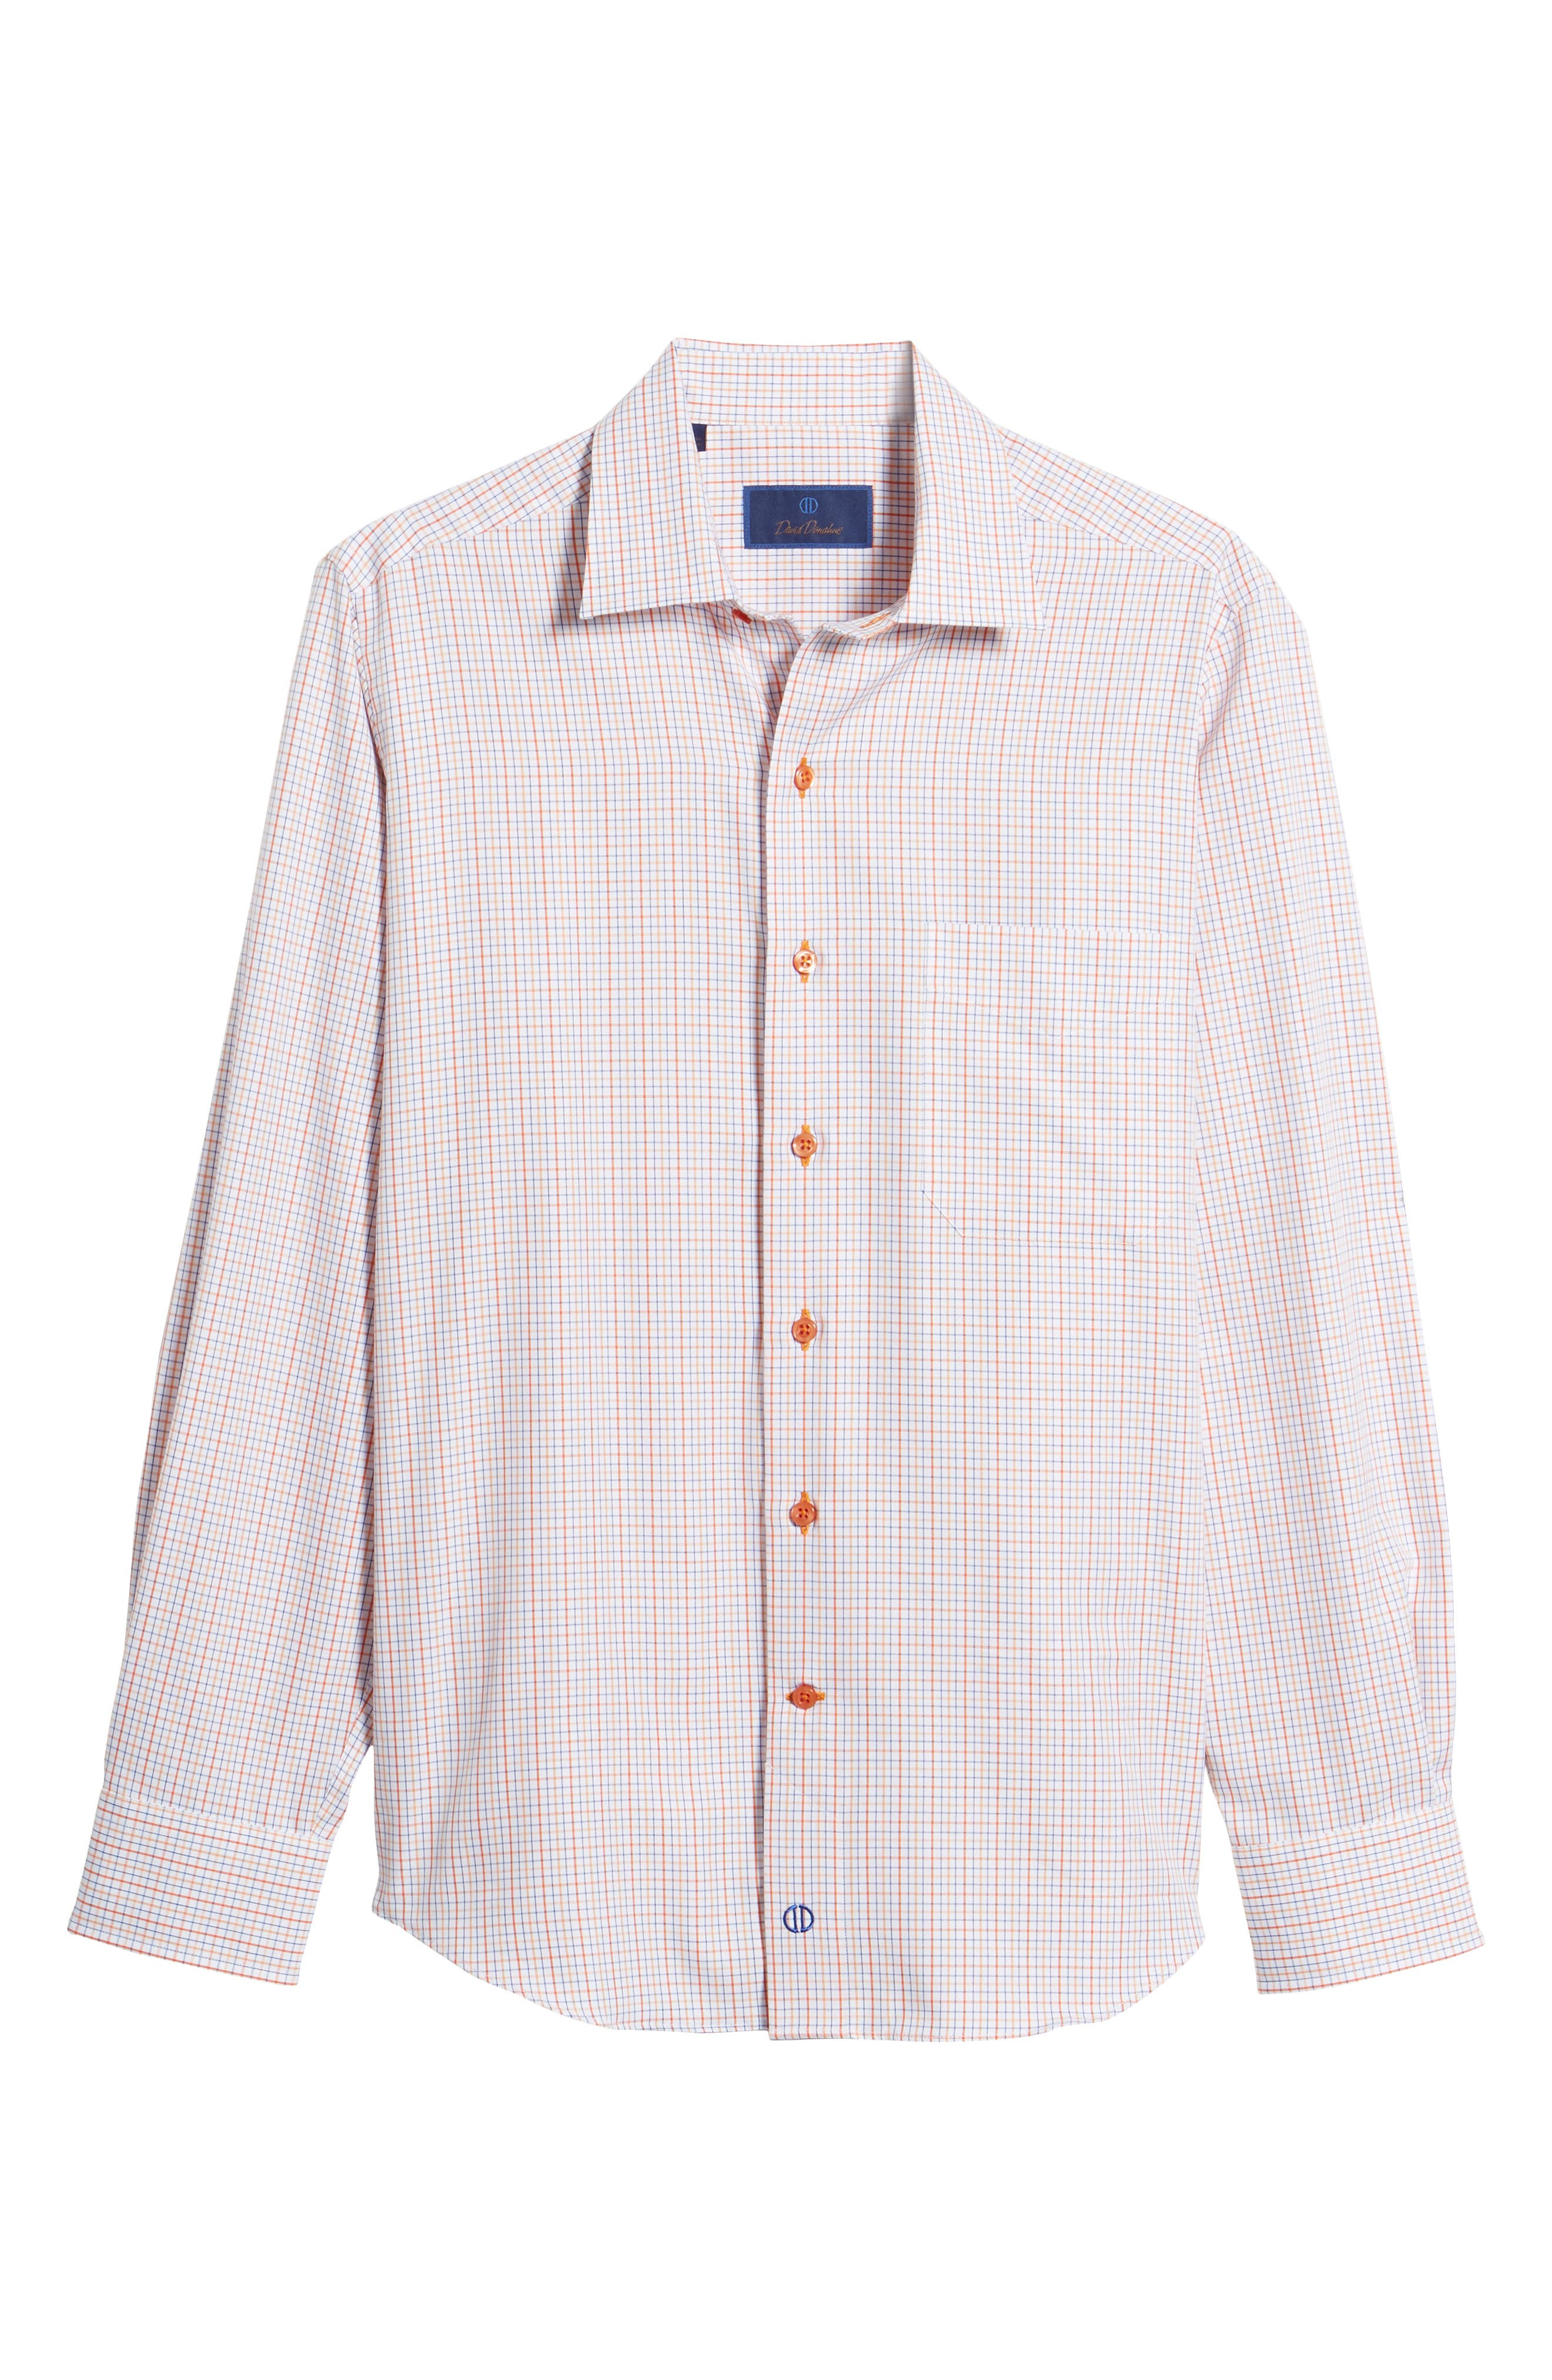 Sport Shirt,                             Alternate thumbnail 6, color,                             830